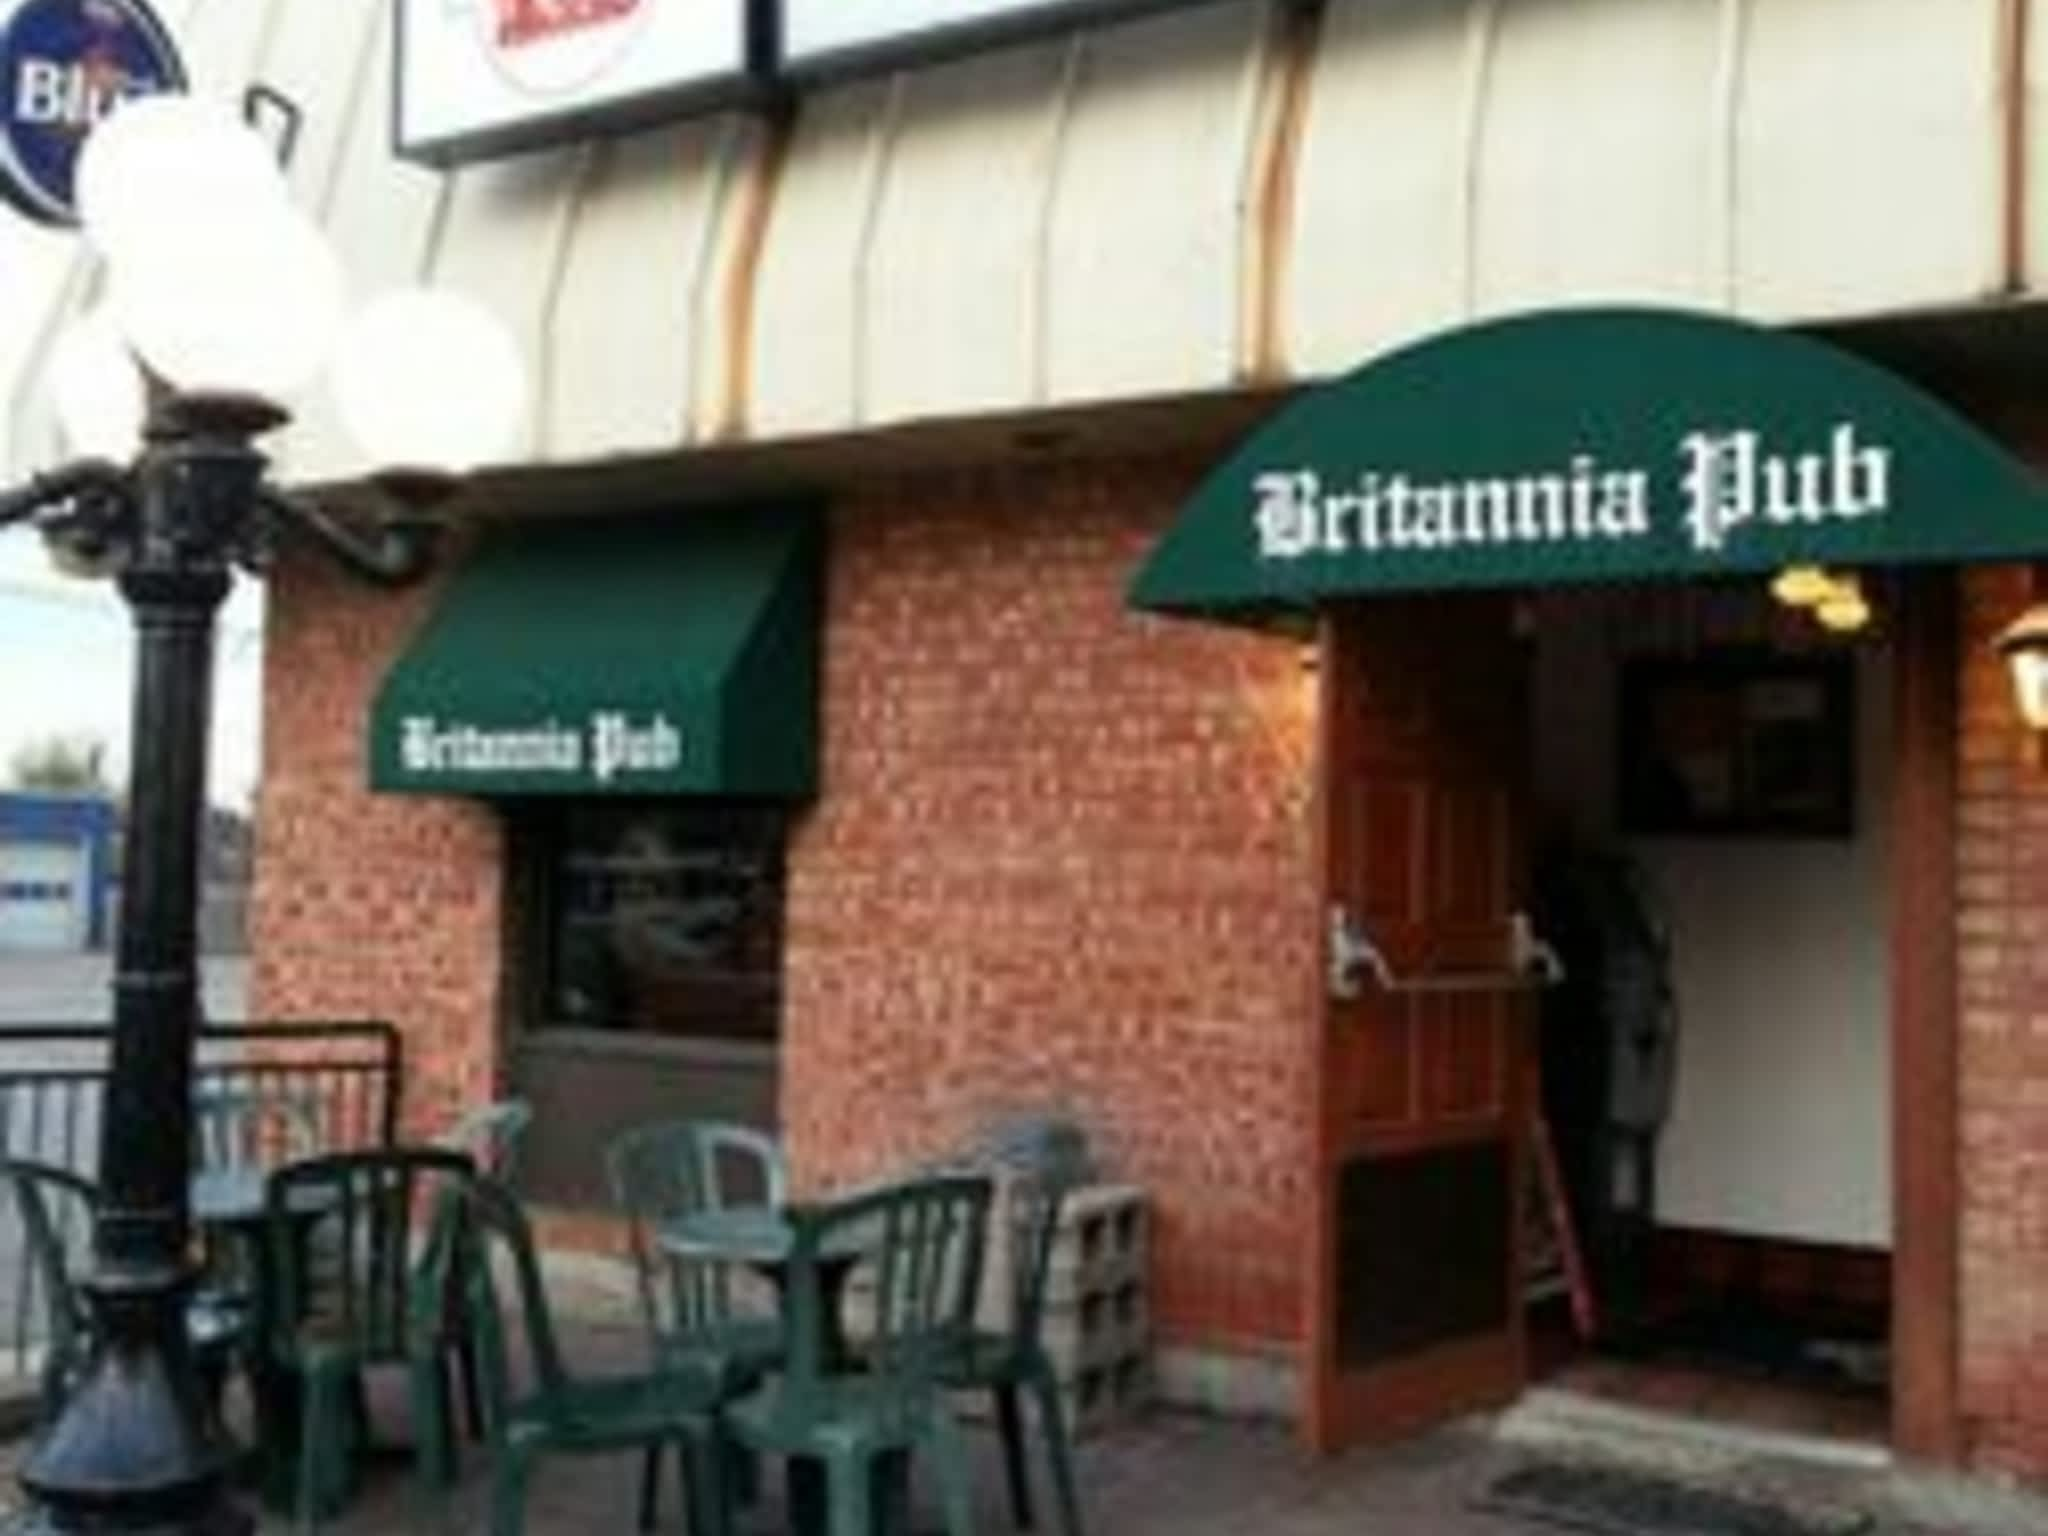 britannia pub grill thornhill on 7359 yonge st canpages. Black Bedroom Furniture Sets. Home Design Ideas